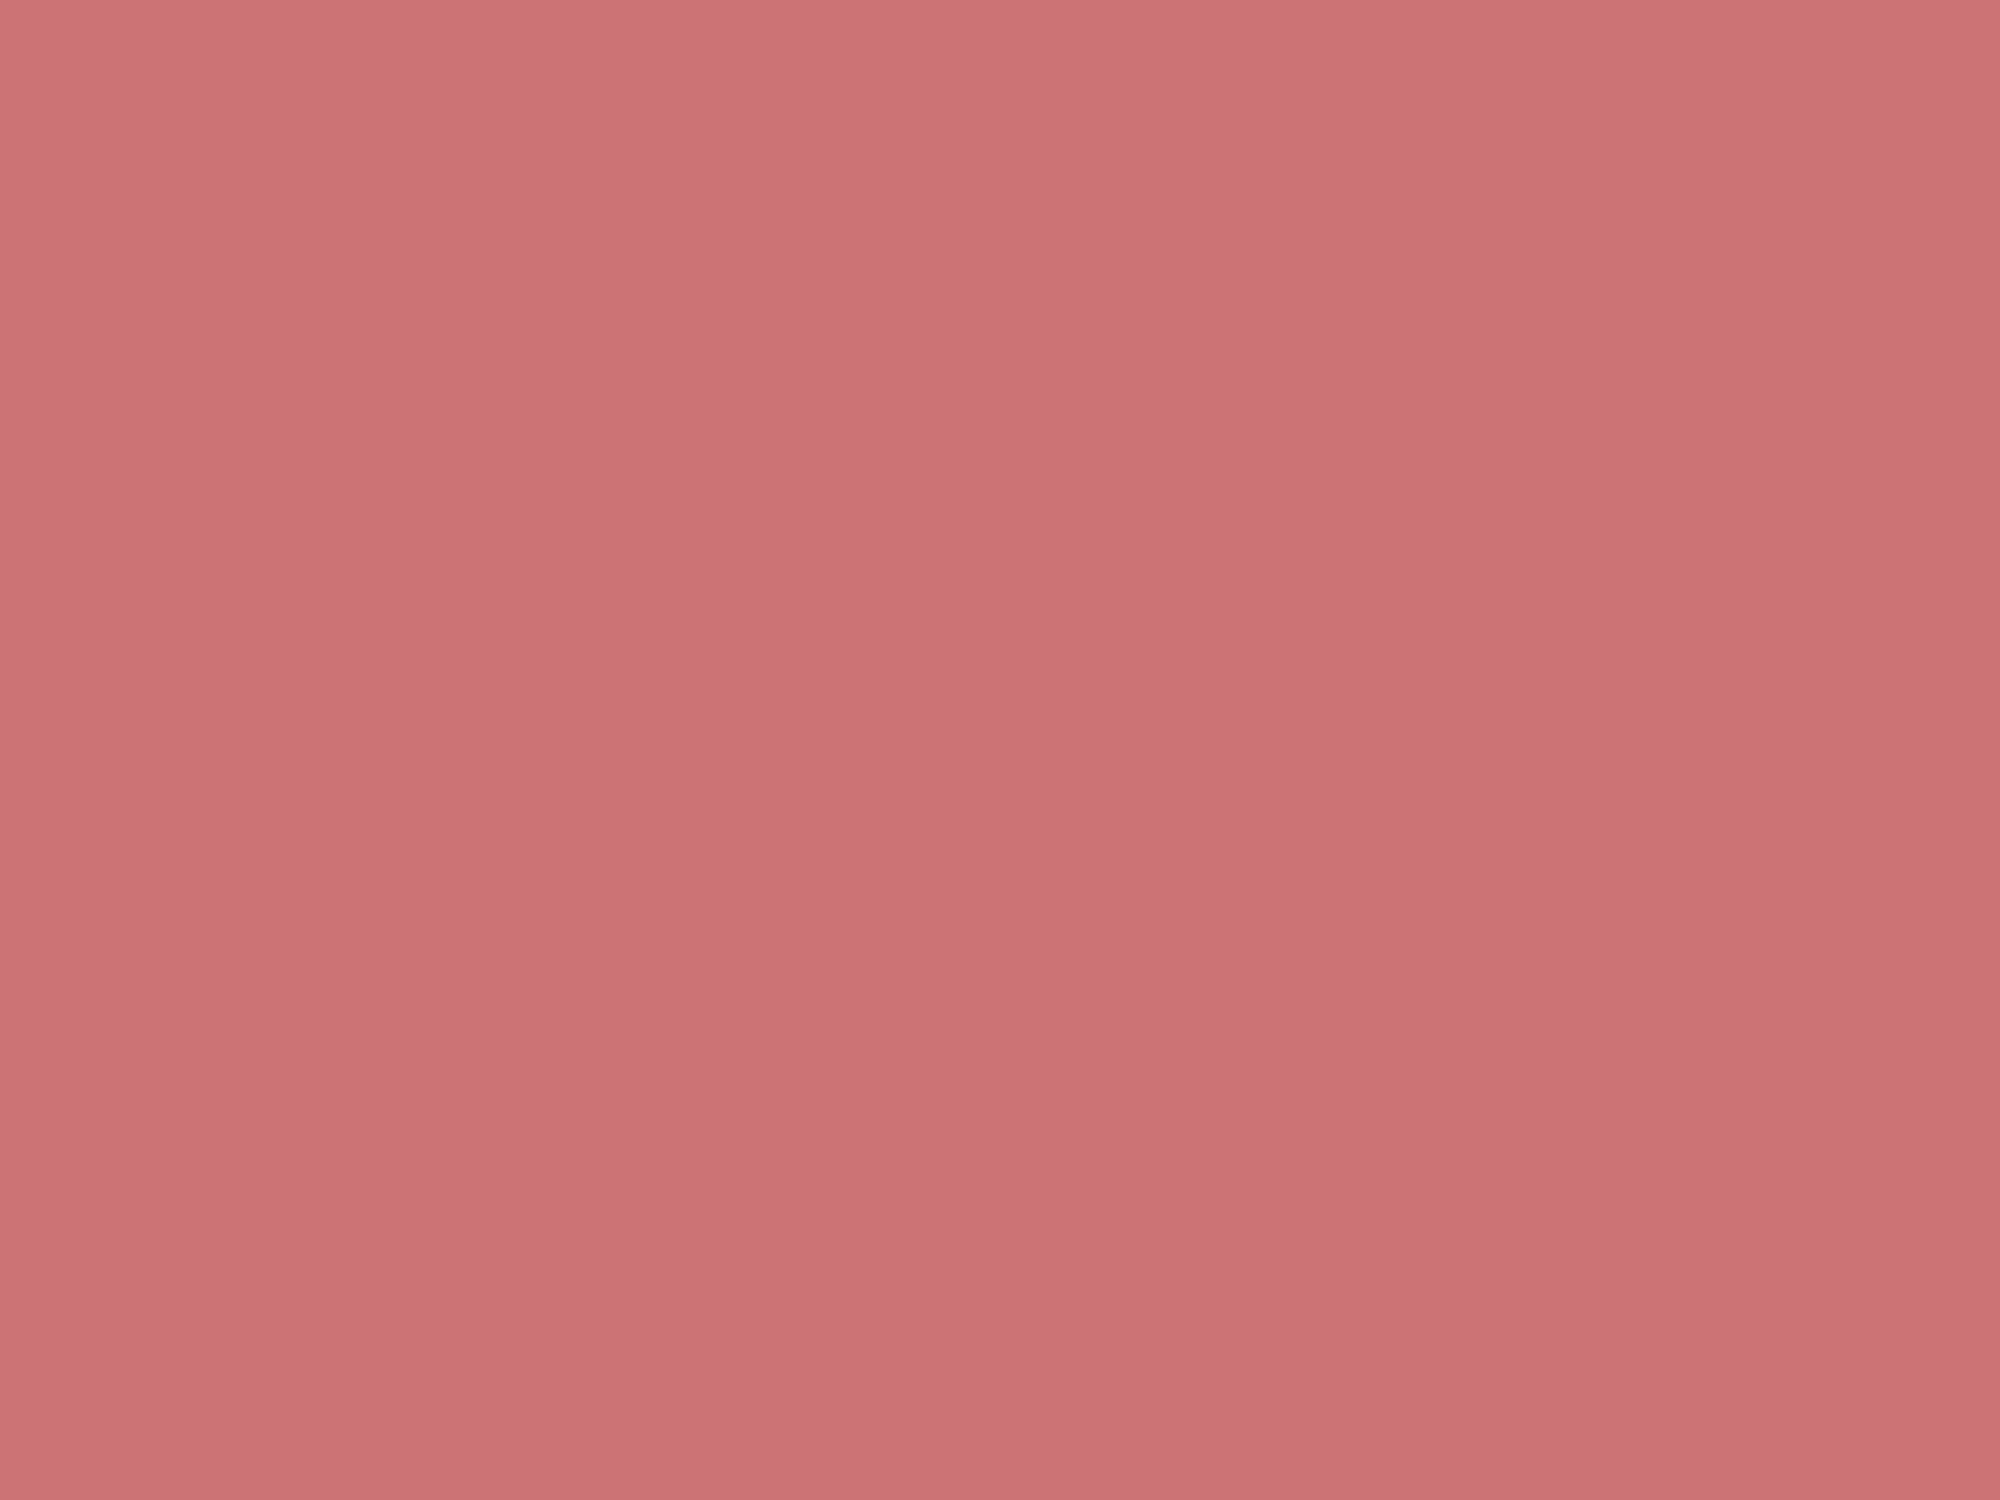 - 35. RAL 3014 PINK